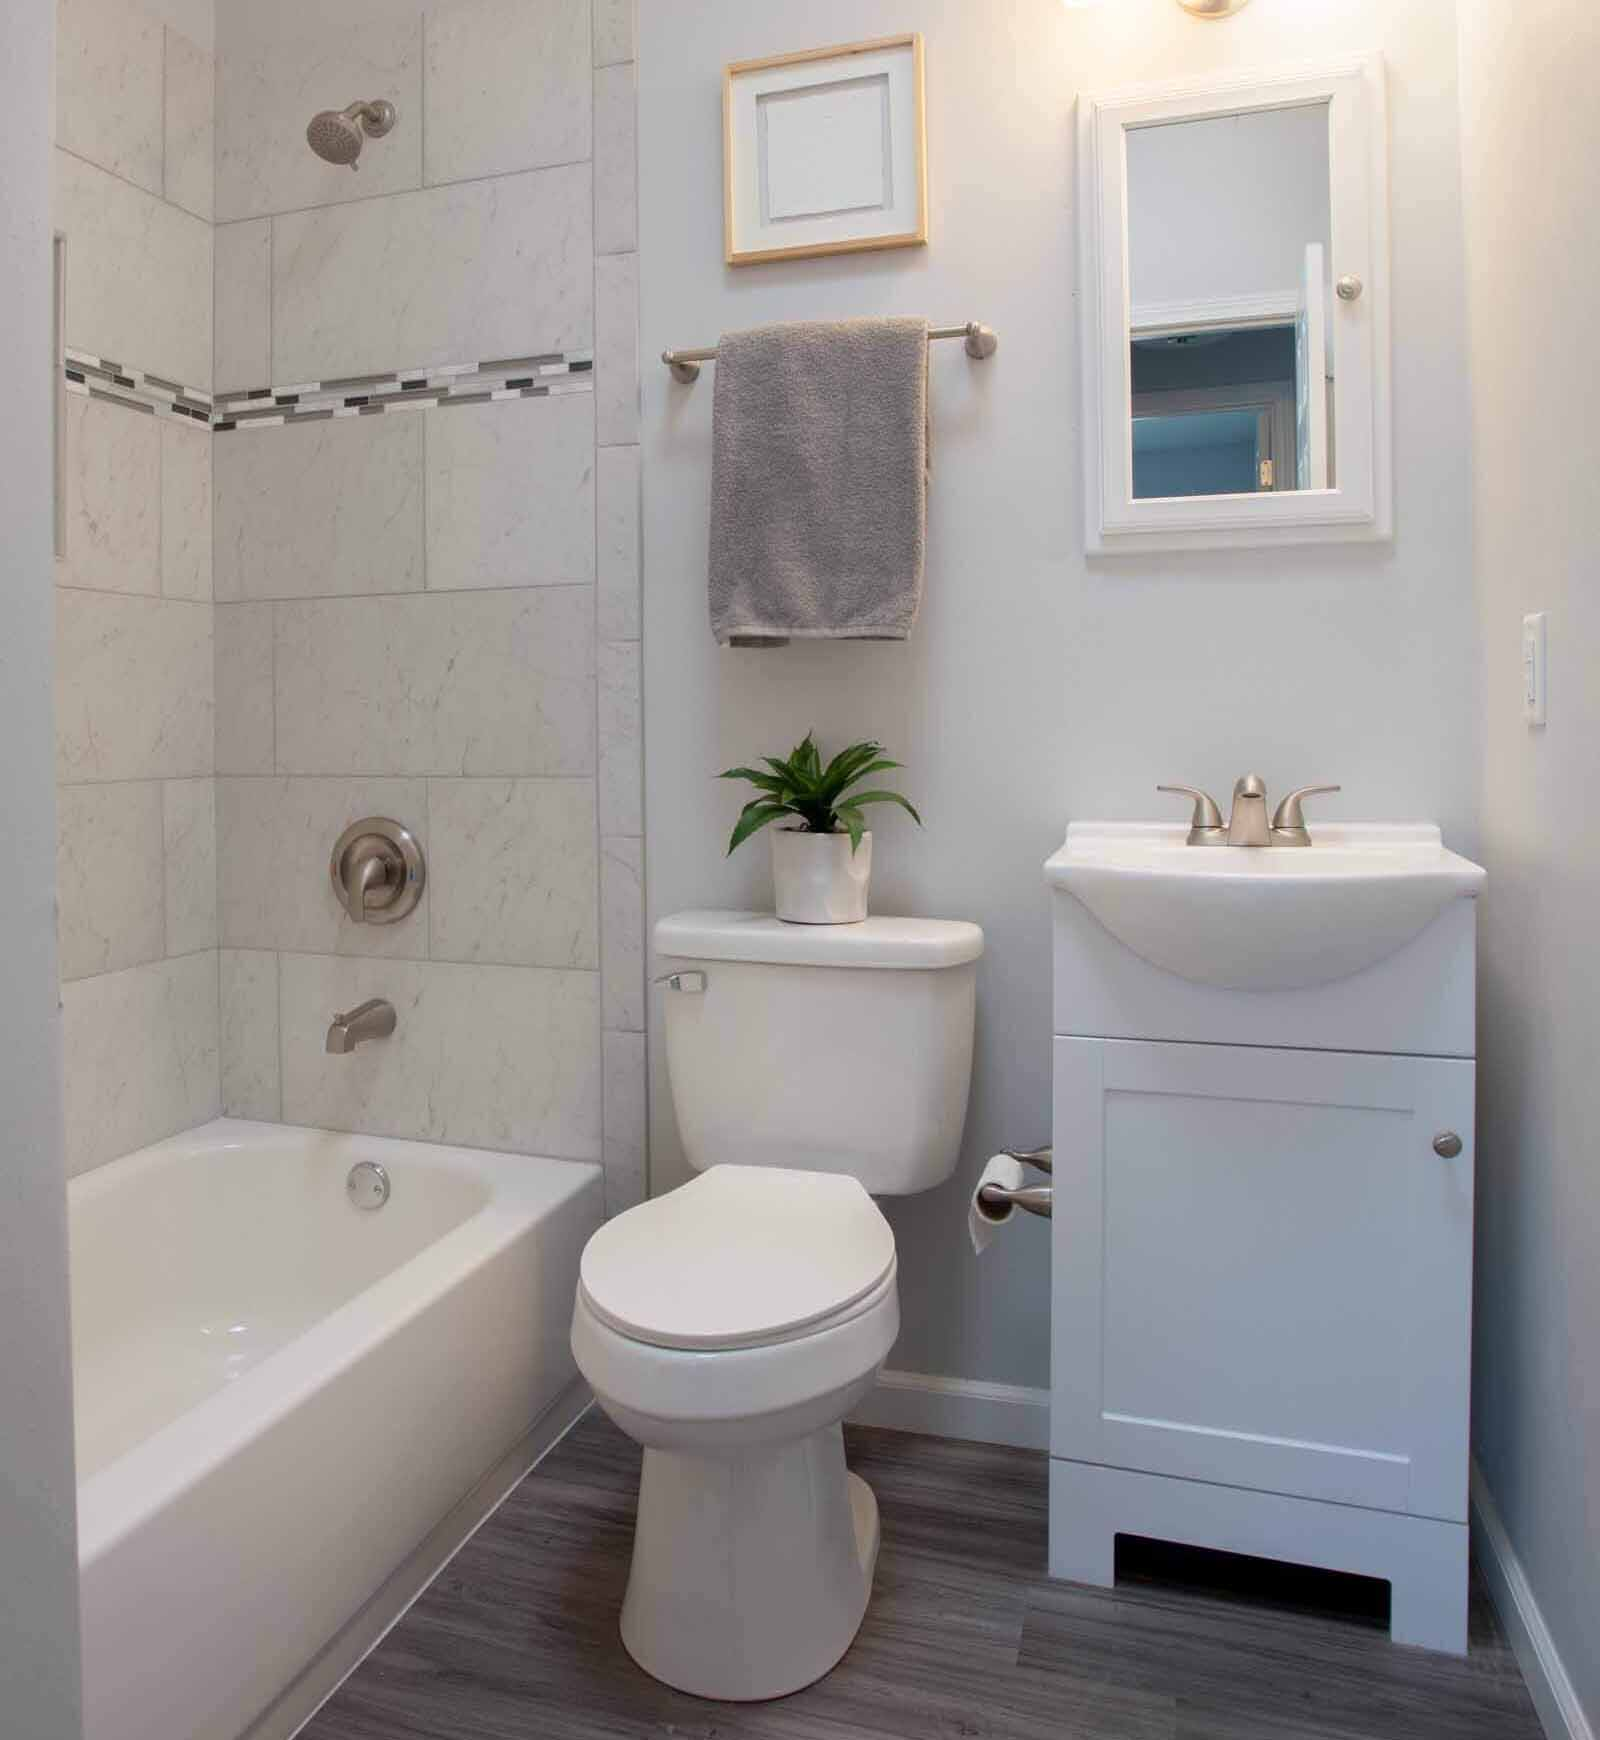 Bathroom Remodeling Renovation Team St Charles MO - How to plan a bathroom remodel